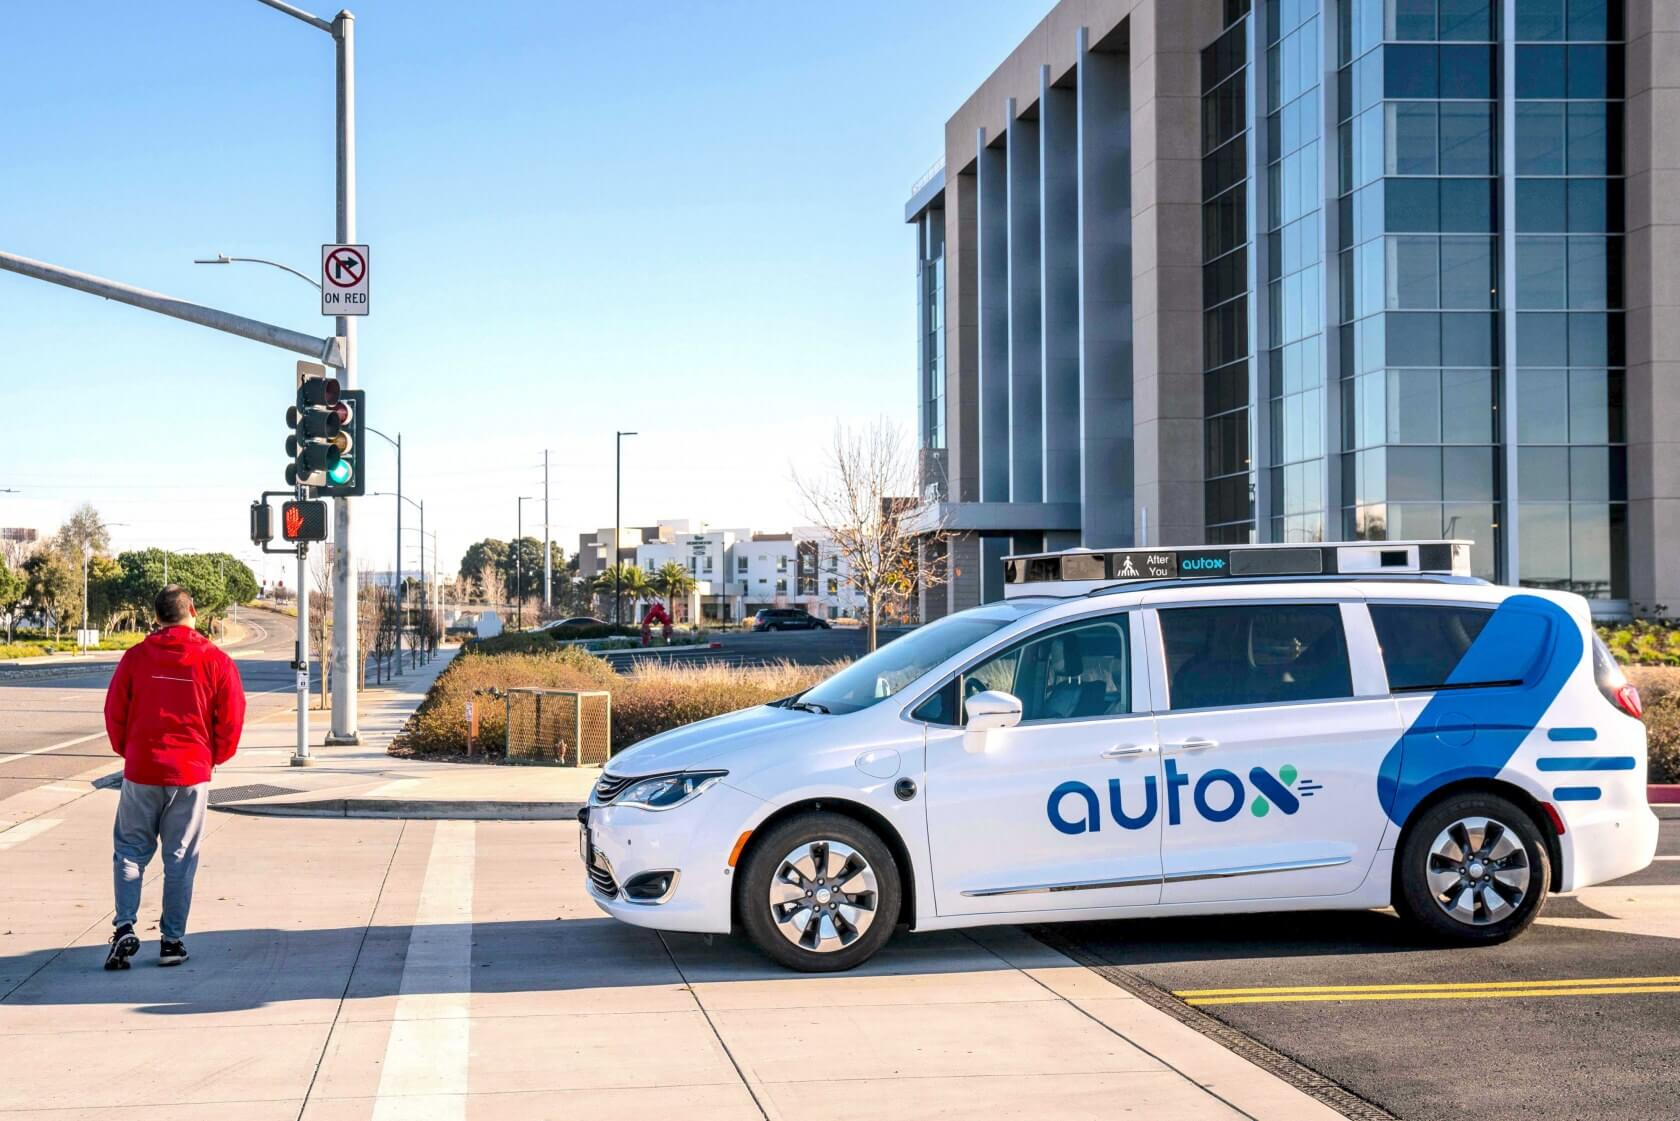 Fiat Chrysler partners with self-driving car startup AutoX to bring a robo-taxi service to China by Q3 2020